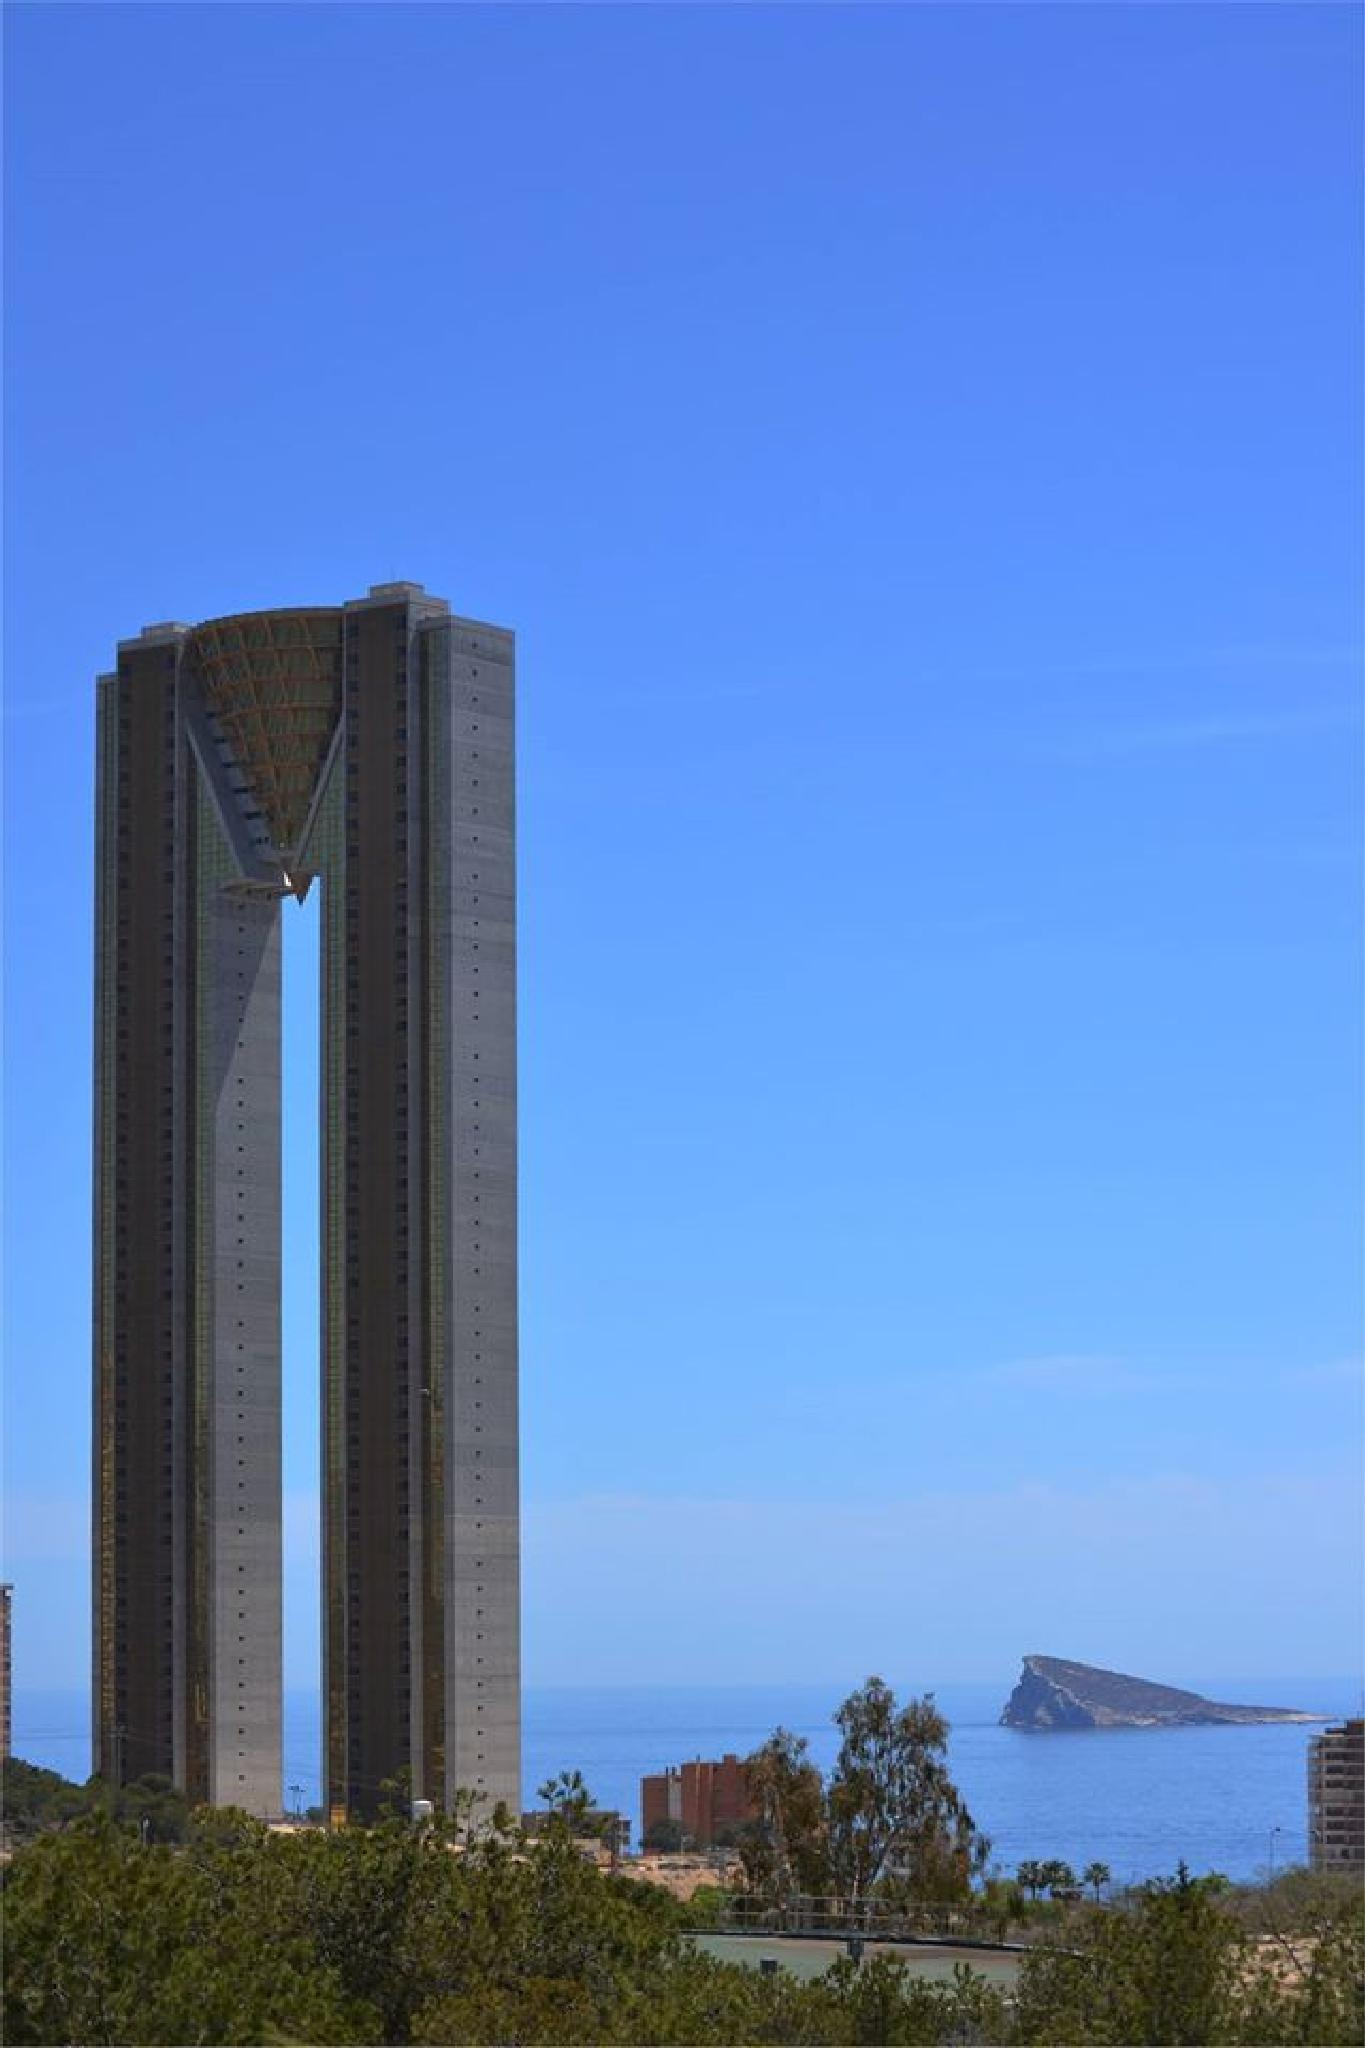 Tempo Towers Benidorm by photoherrieschnoink